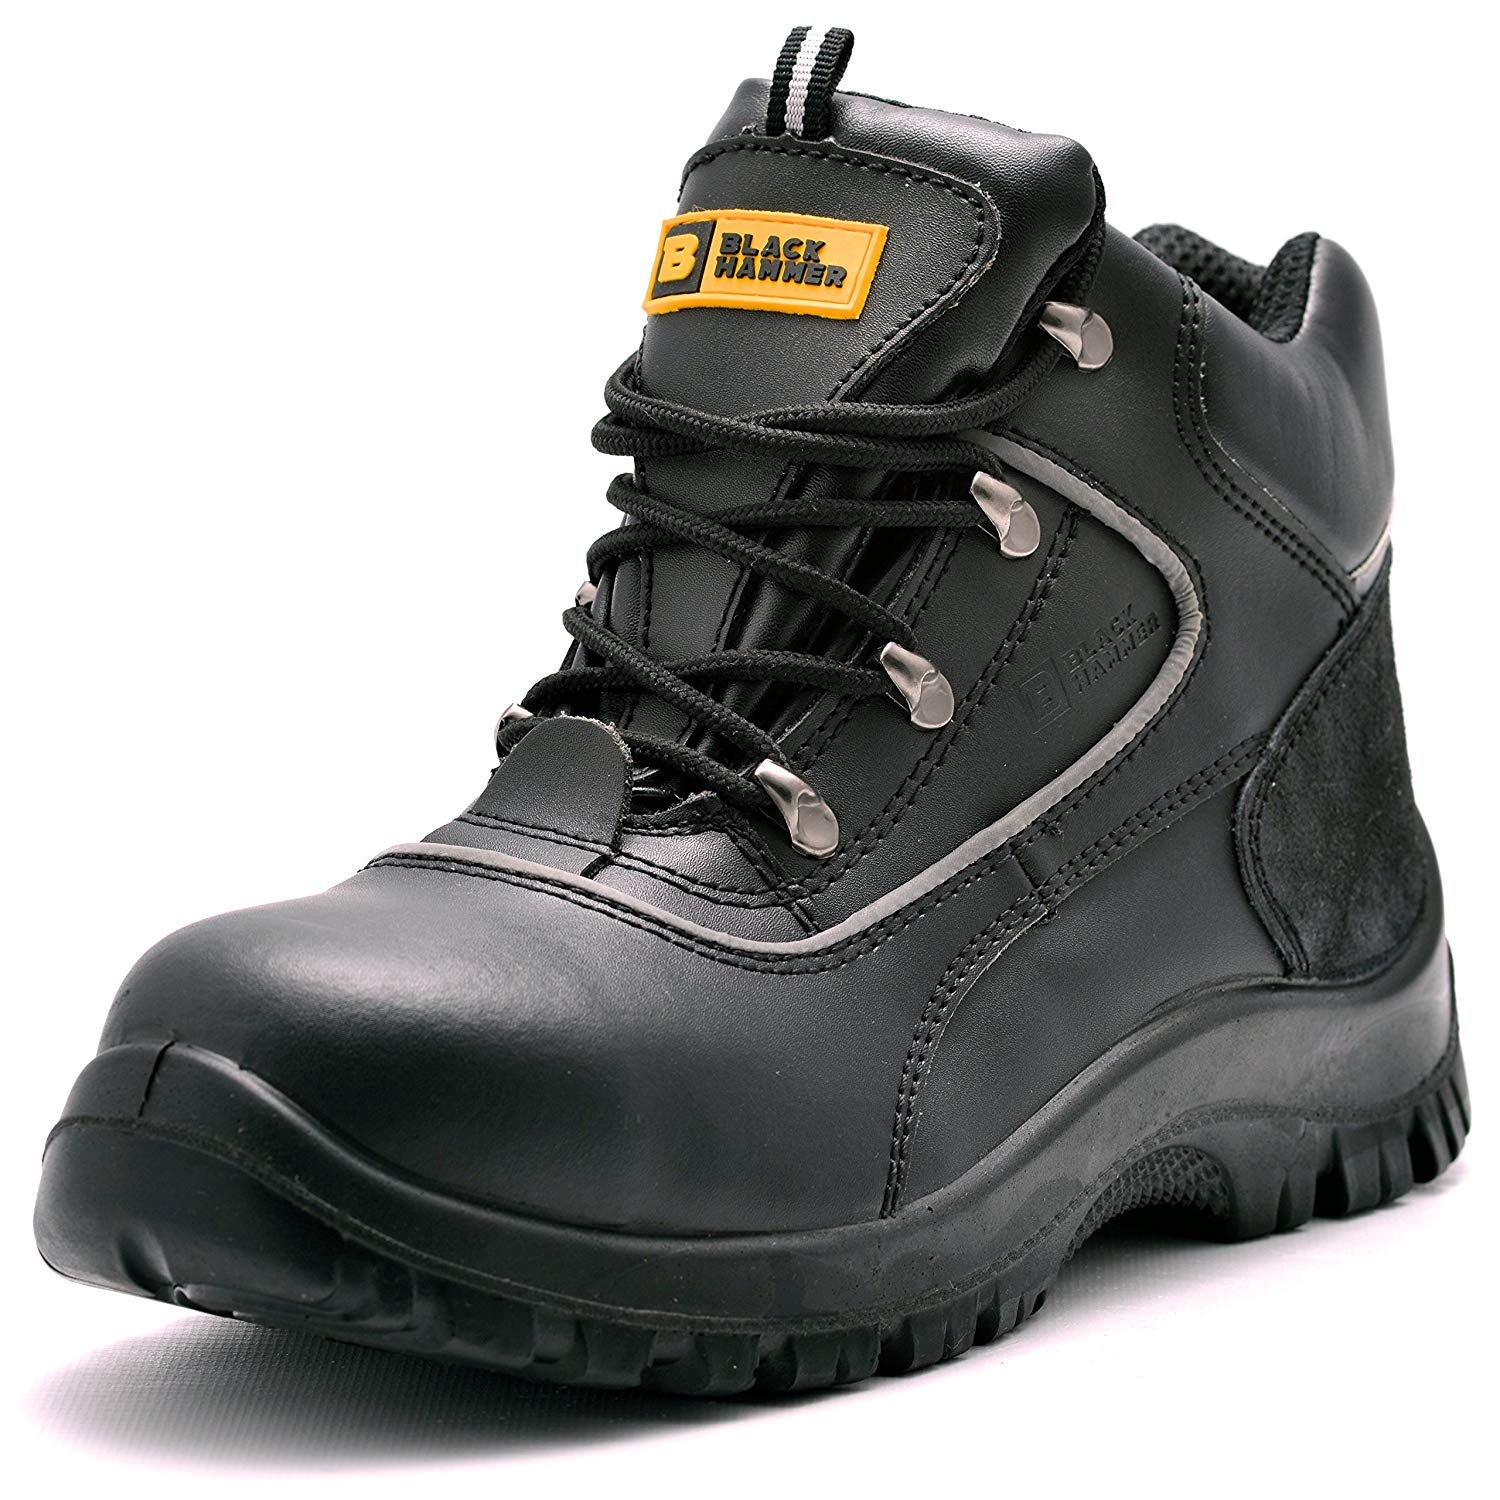 68fe50adce2 Cheap S3 Safety Boots Or Shoes, find S3 Safety Boots Or Shoes deals ...